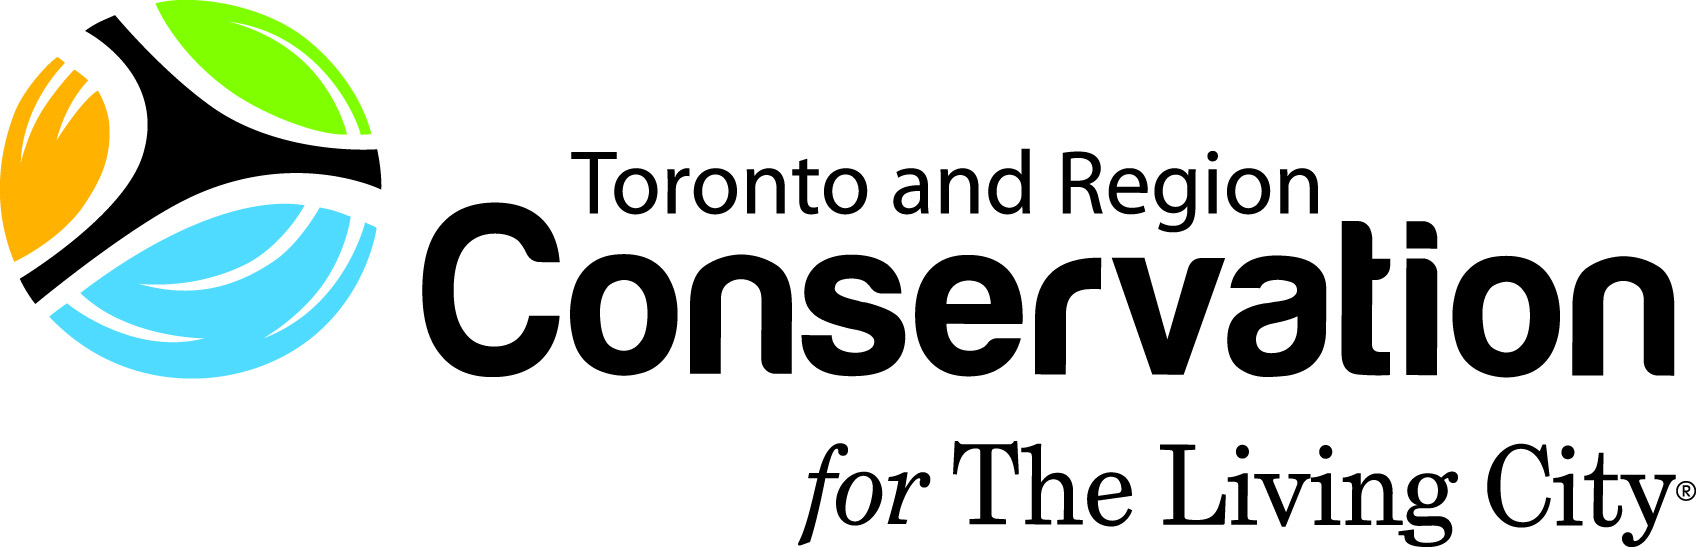 TRCA-CorporateLogo2012_CMYKversion.jpg